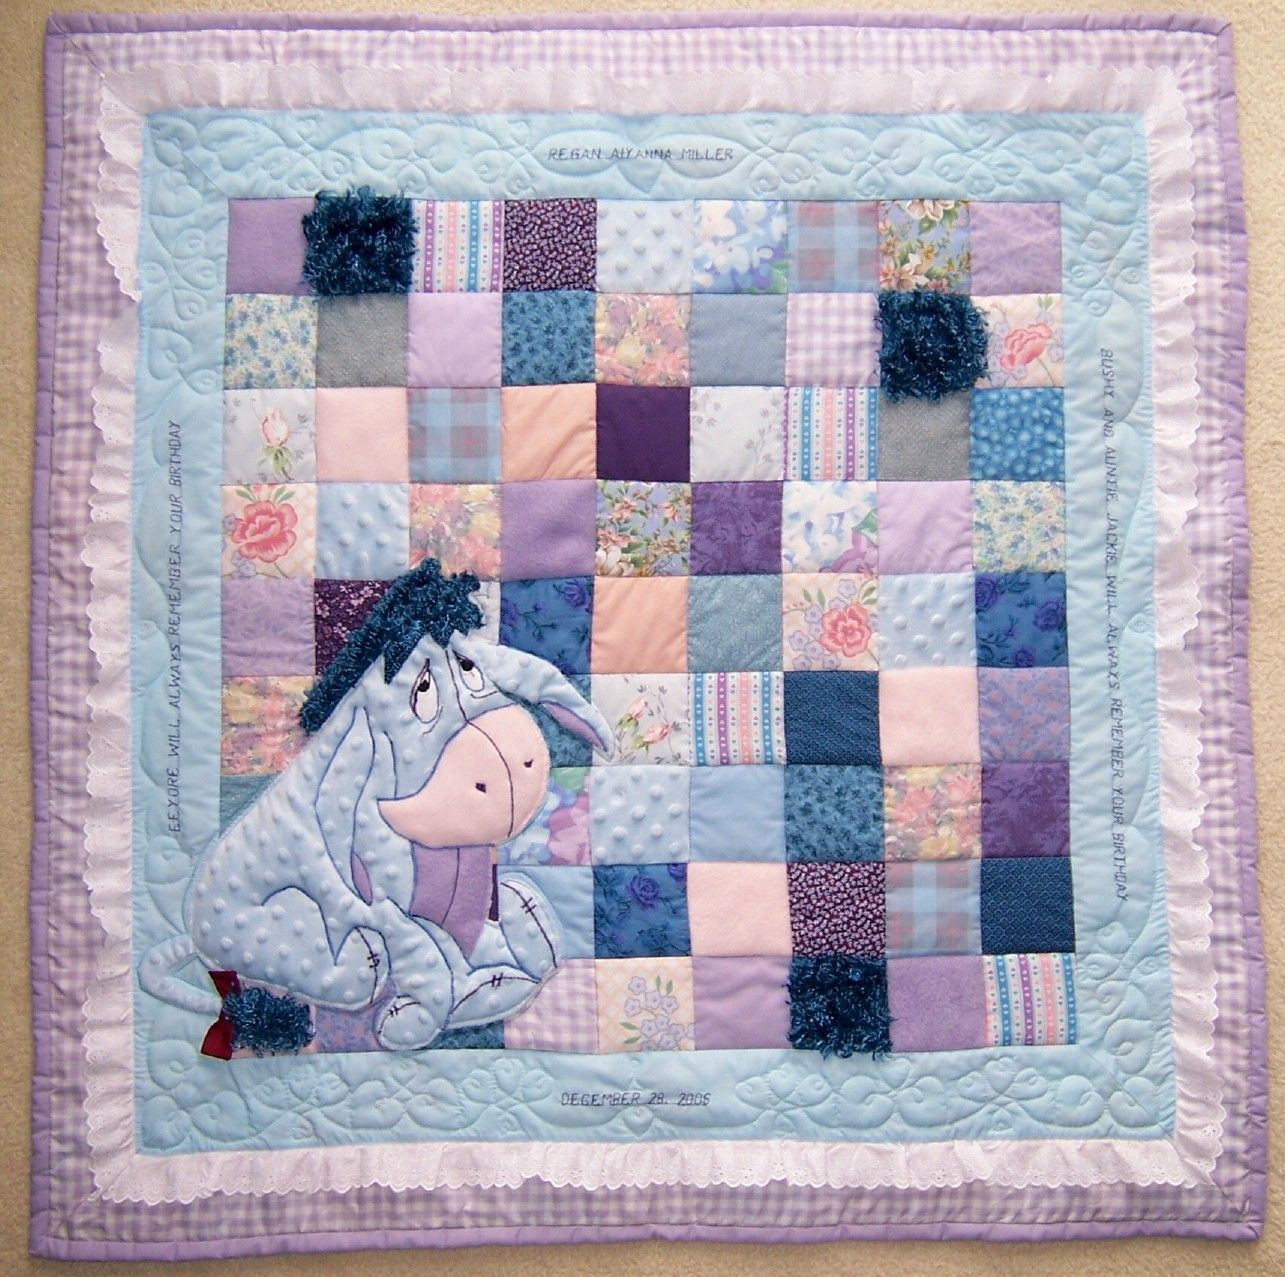 Eeyore! I so Want it! | Baby and big boy clothes!! | Pinterest ... : pooh quilt - Adamdwight.com